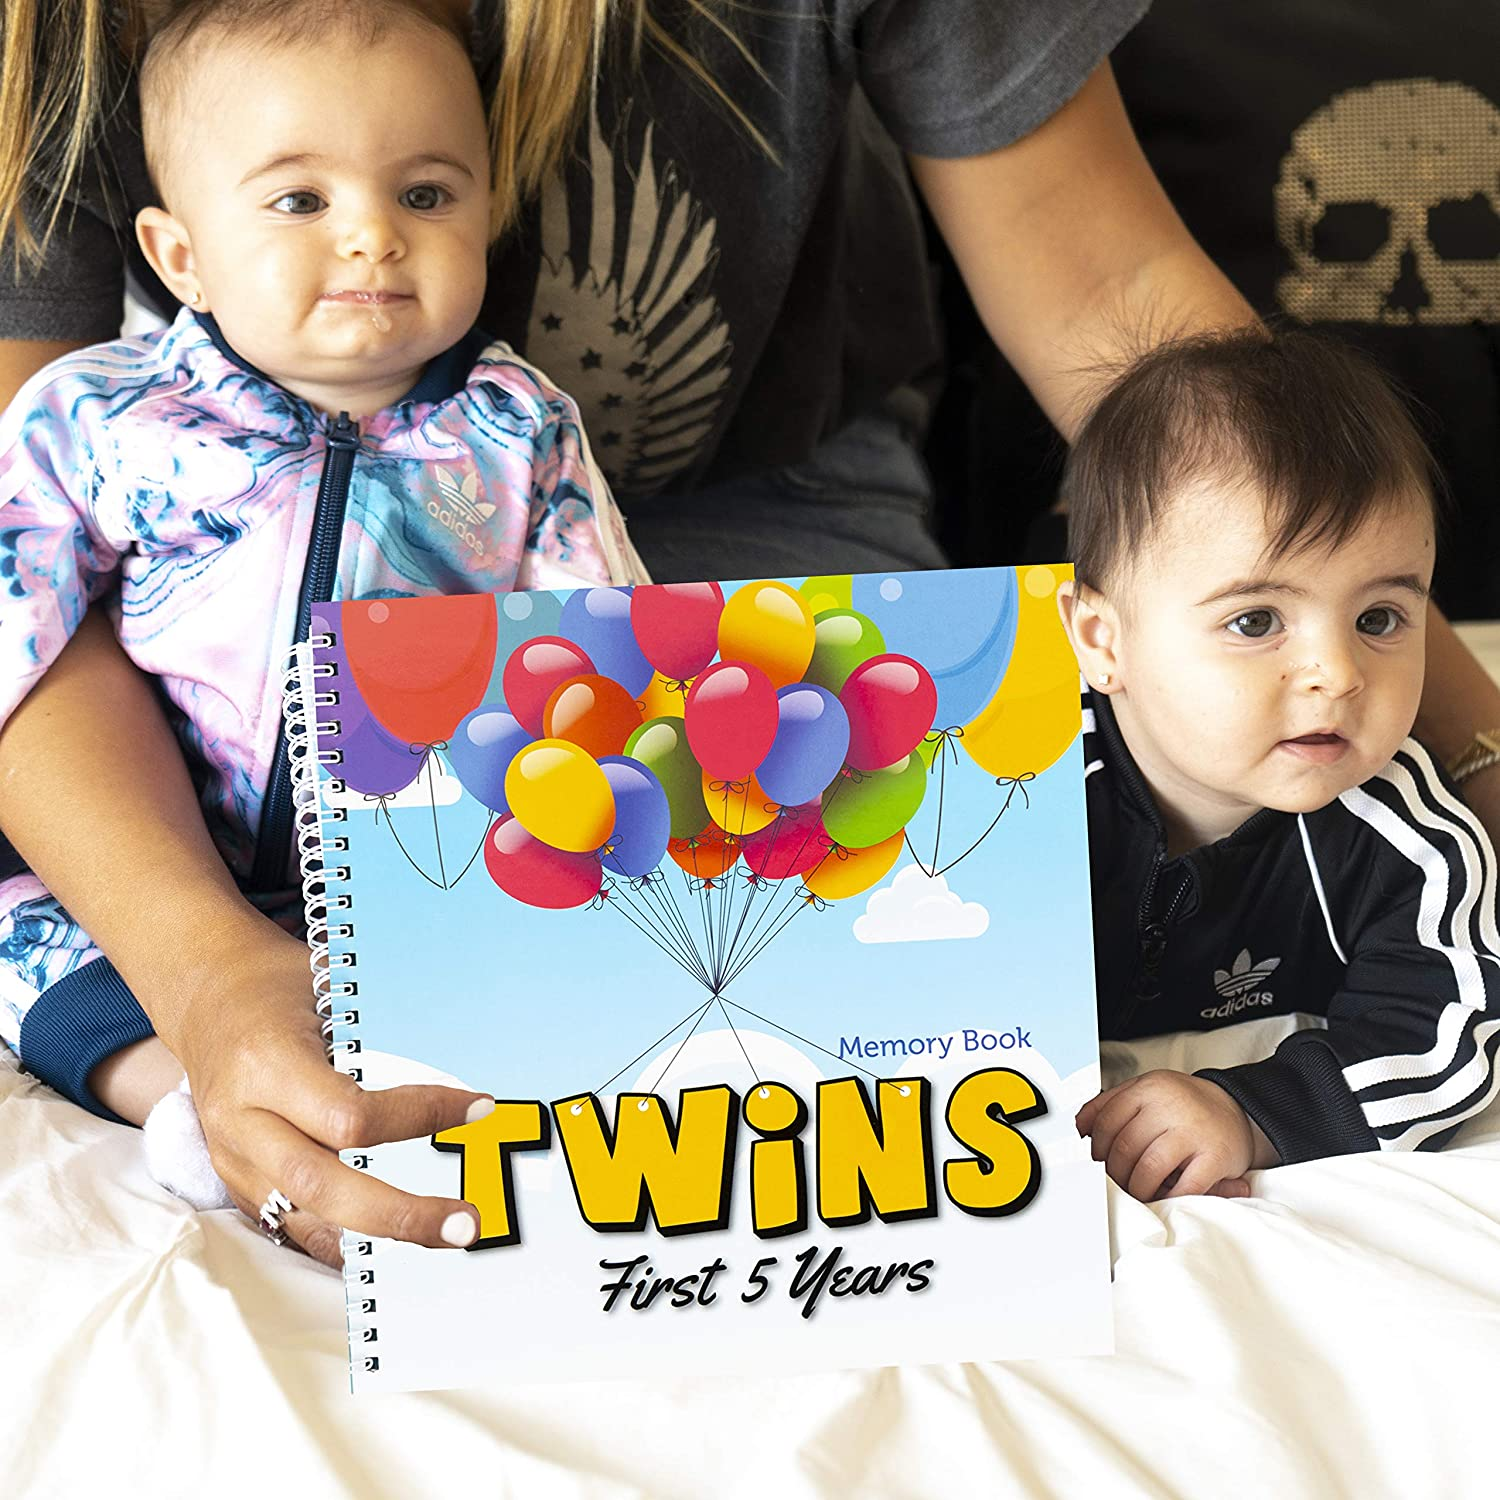 Newborn Hard Cover Journal Twins First 5 Years Memory Book with Stickers The Adventure Edition Babies Personalized Keepsake Scrapbook Diary Baby 1st Year Milestone Photo Album for Mom /& Dad